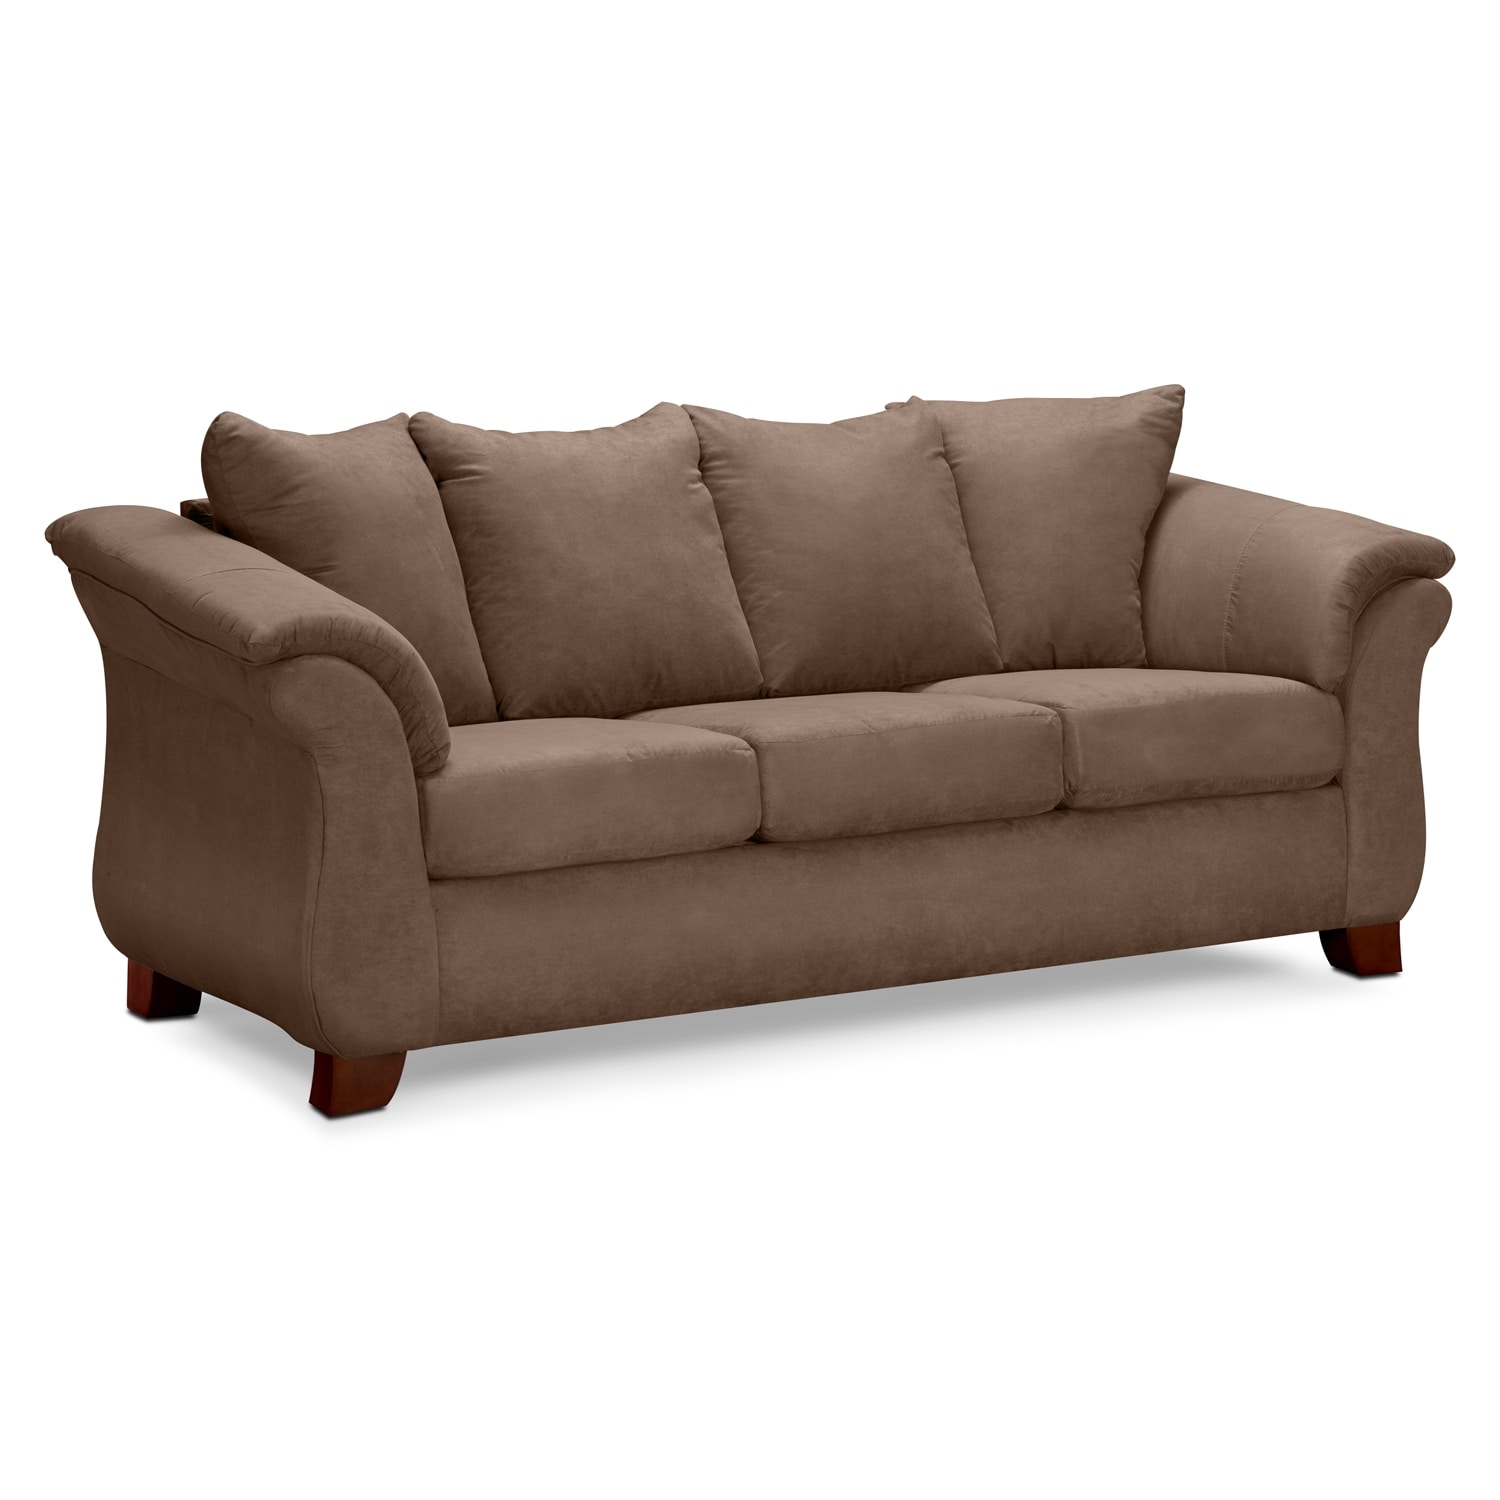 Adrian taupe sofa value city furniture for Furniture sofas and couches